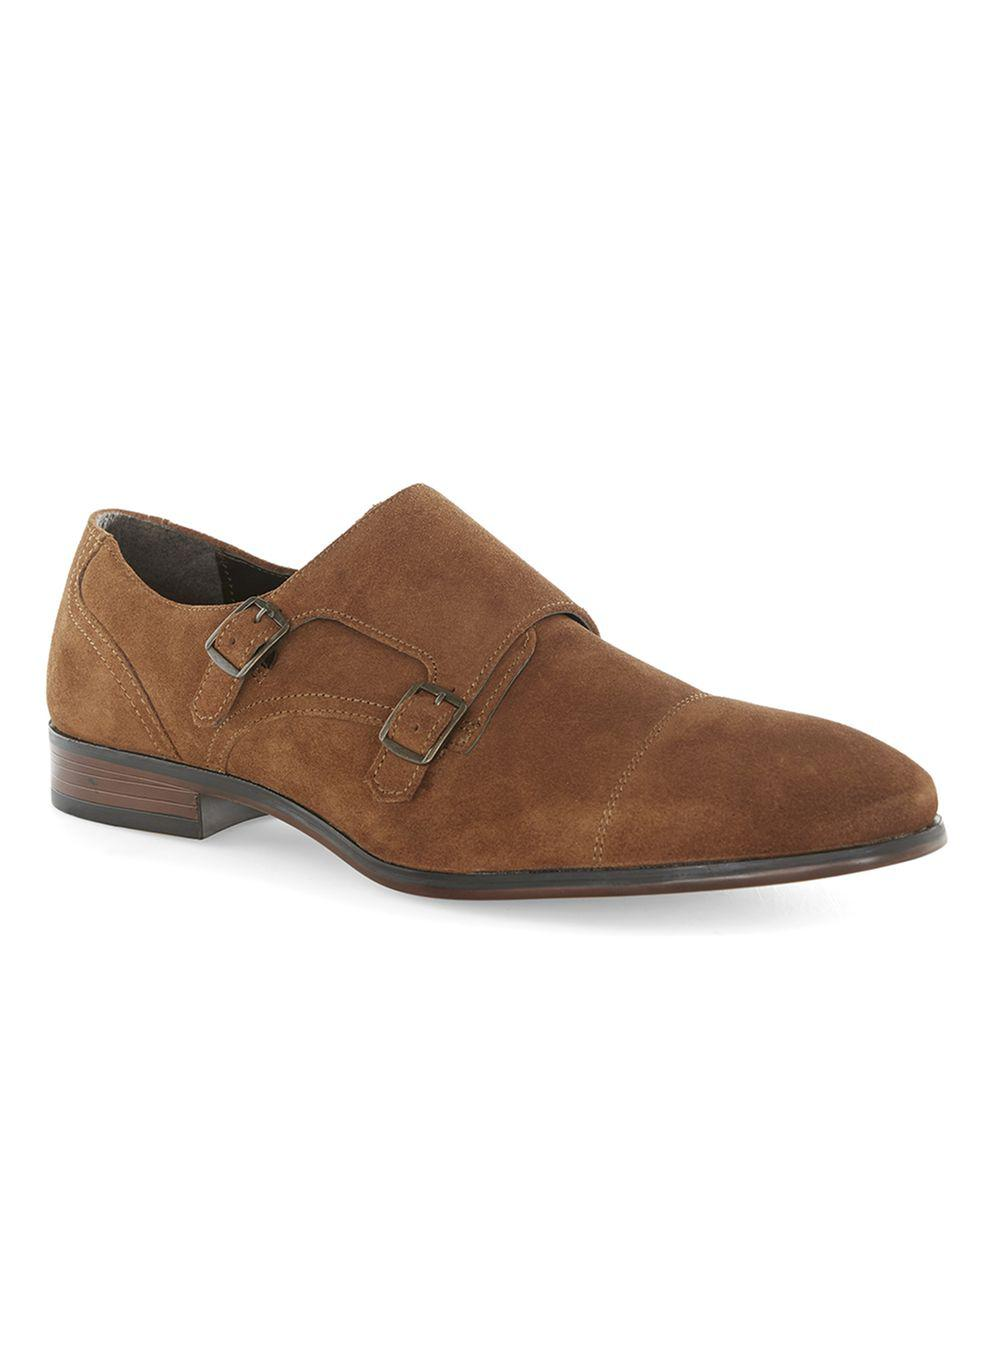 Fred Perry Brown Shoes